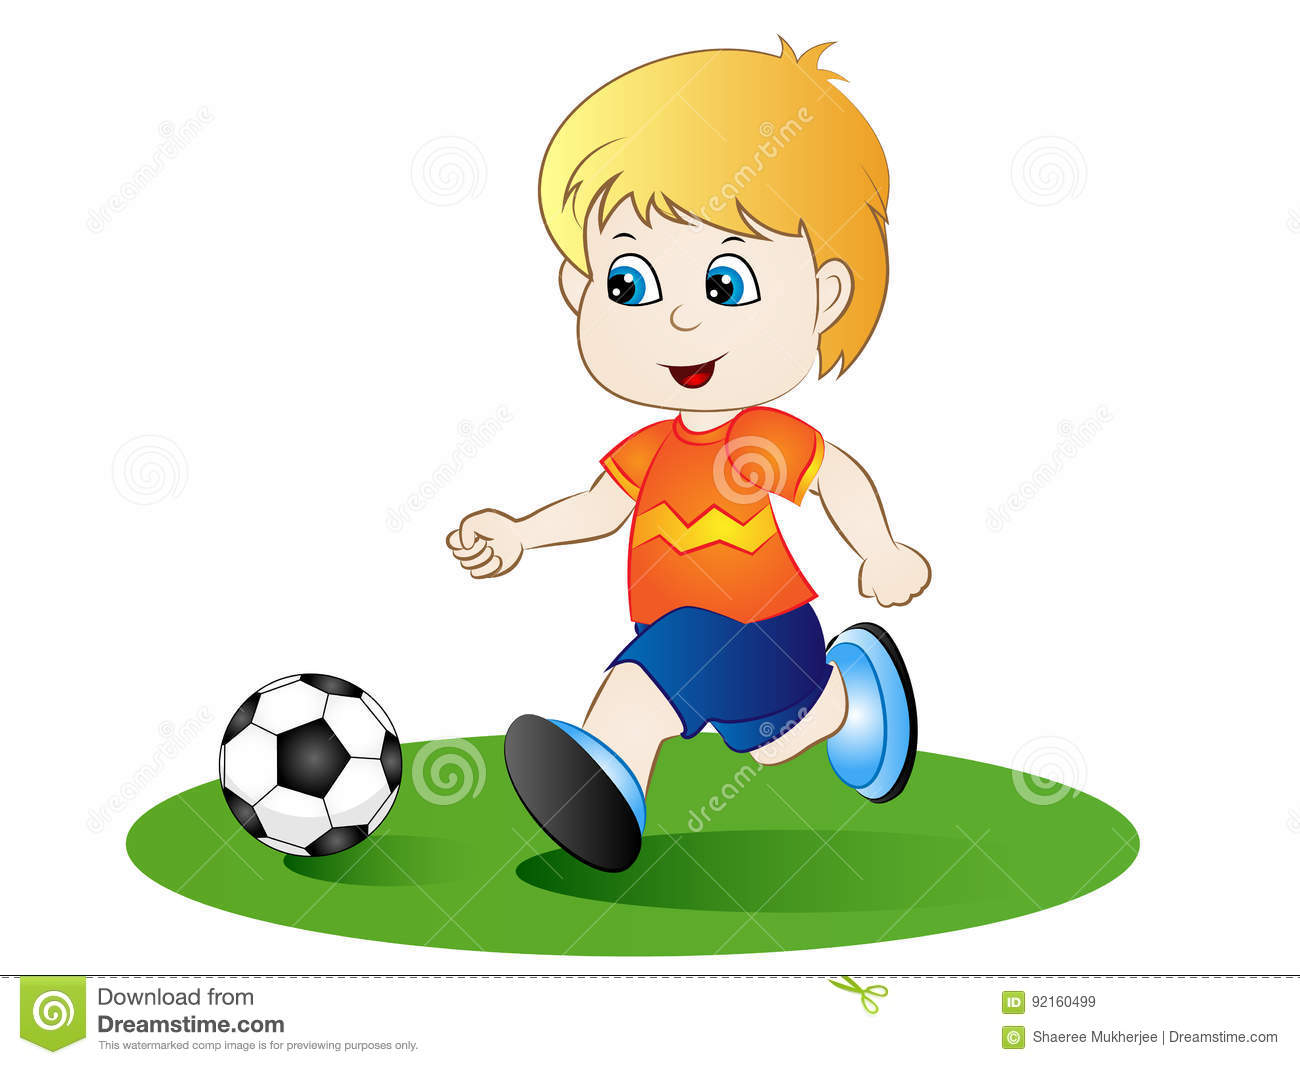 Cartoon Boy Playing Football Stock Illustrations 2 784 Cartoon Boy Playing Football Stock Illustrations Vectors Clipart Dreamstime